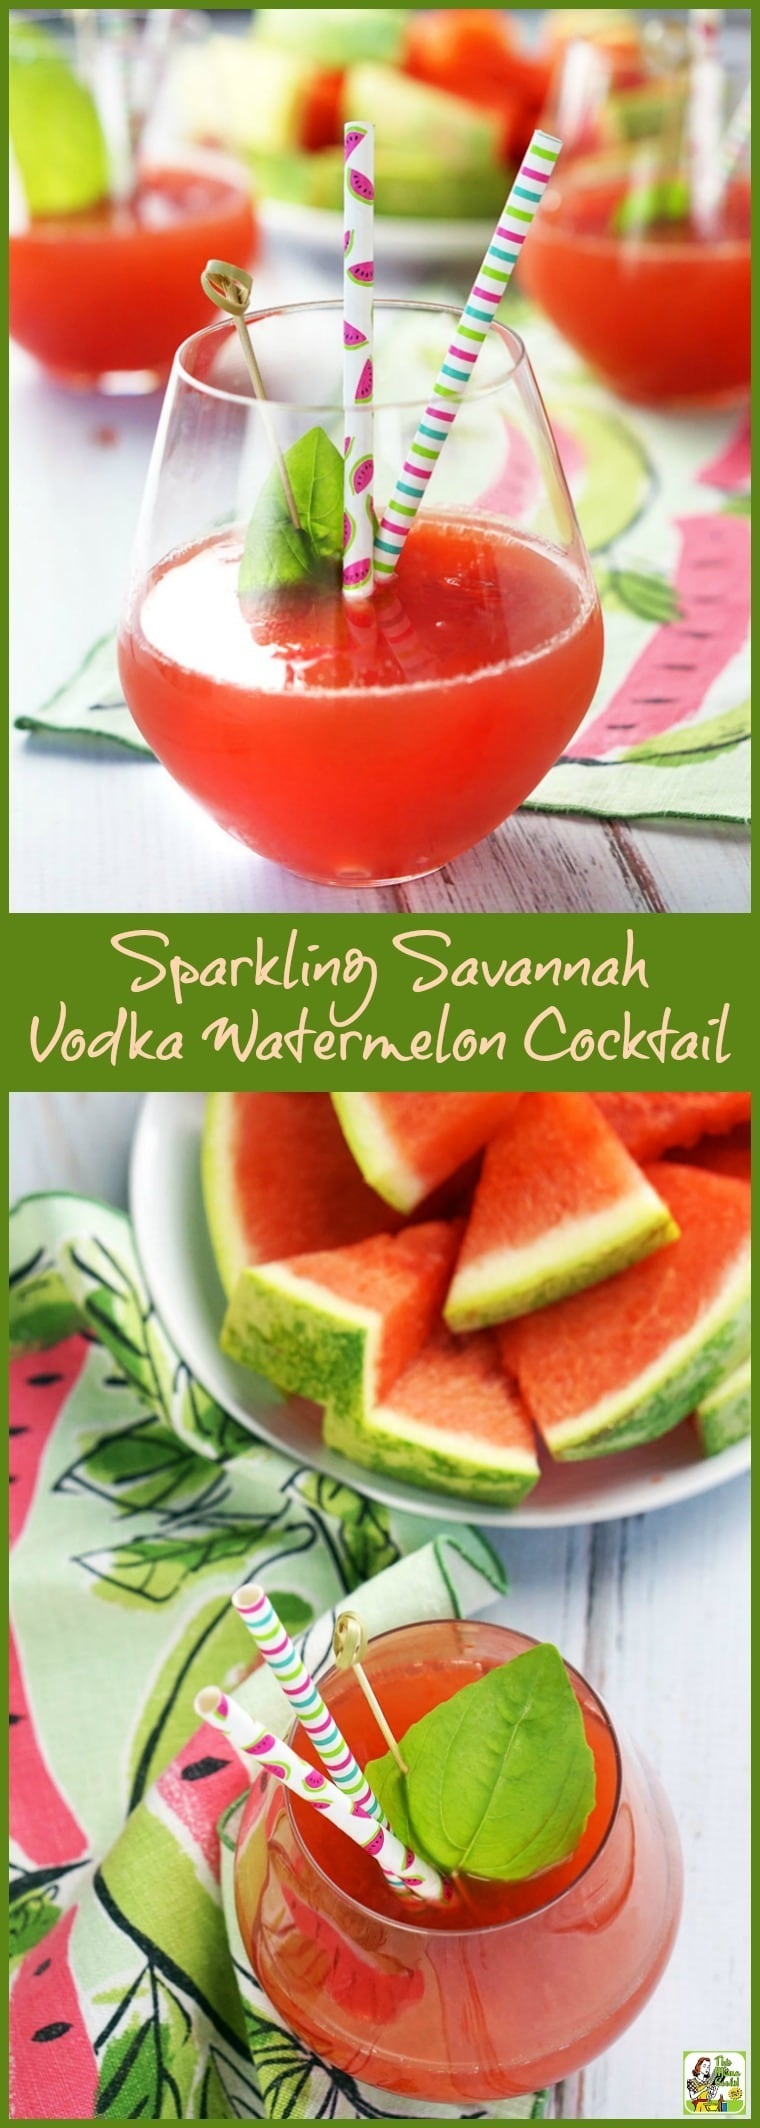 The best fresh watermelon cocktail for summer! Make this Sparkling Savannah Vodka Watermelon Cocktail recipe with fresh watermelon juice, vodka, sparkling wine, and St. Germain liqueur. Clikc to get this refreshing watermelon cocktail recipe.